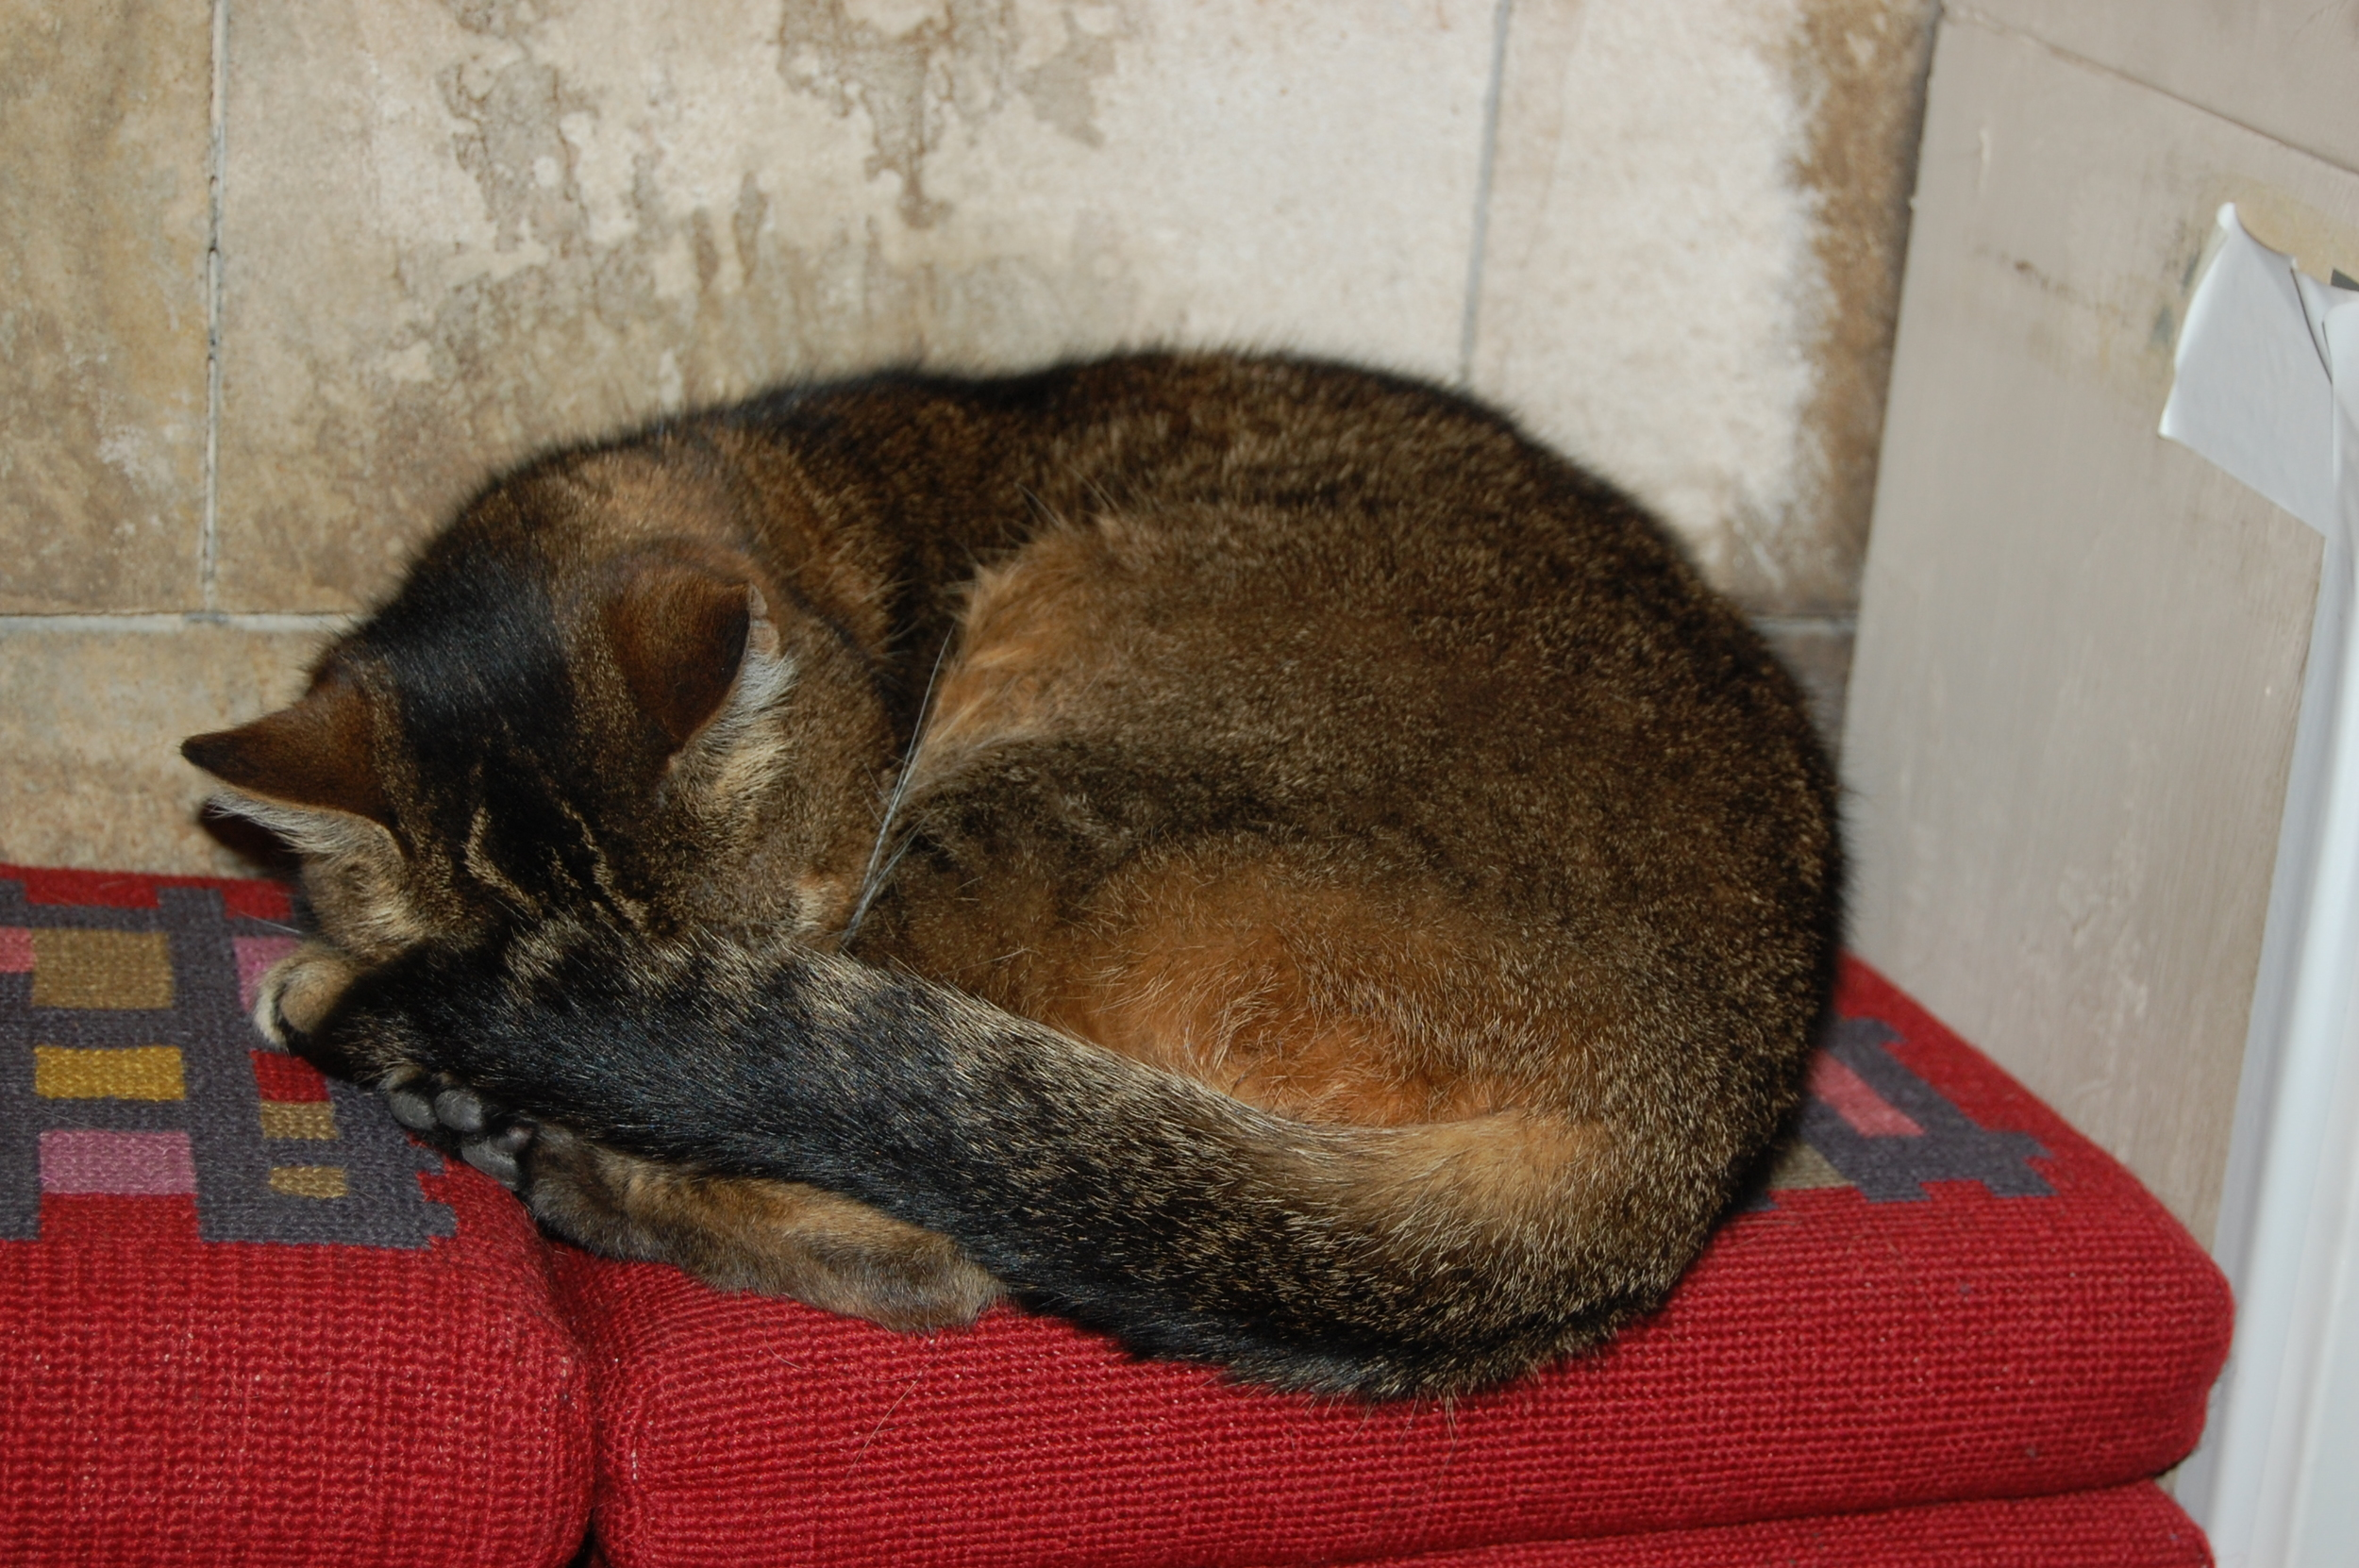 Doorkins Magnificat, the Southwark Cathedral cat.